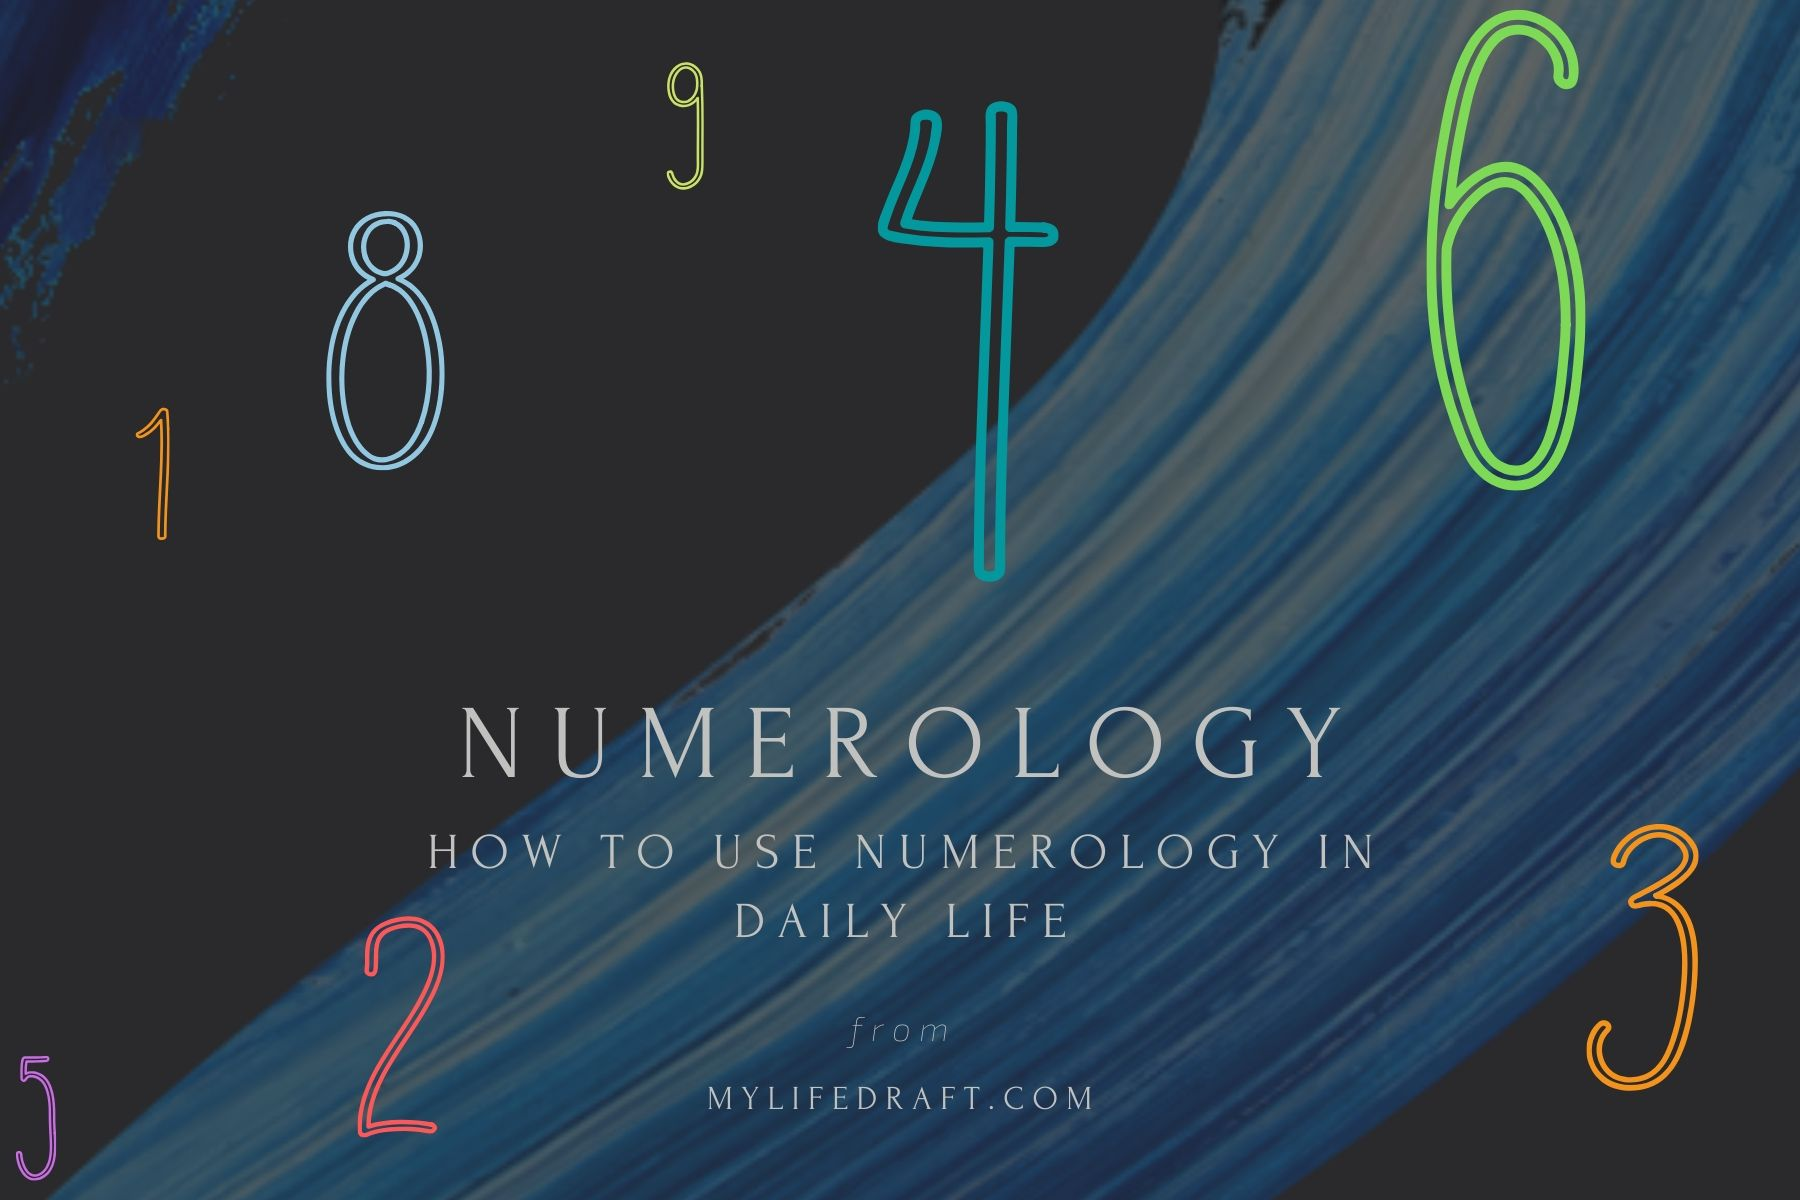 How to use numerology in daily life